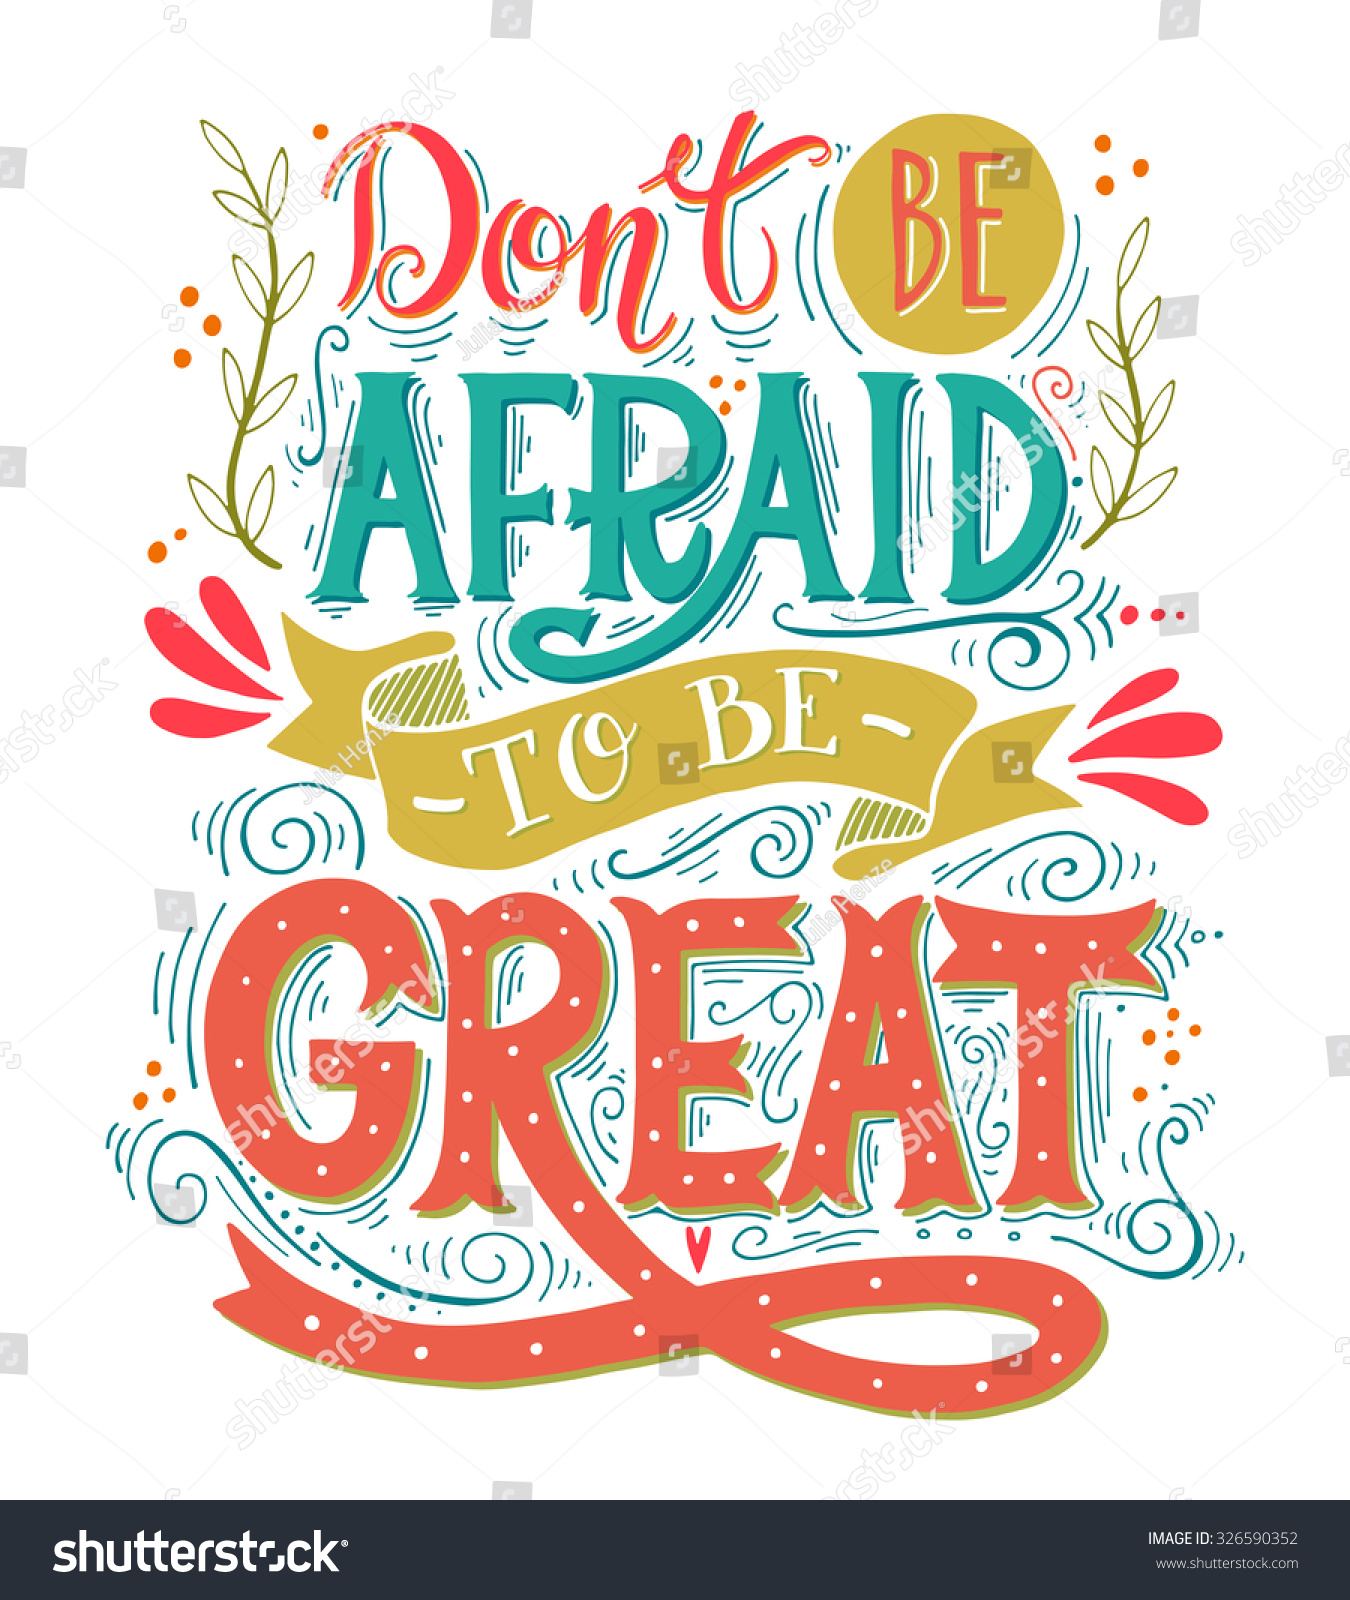 Be Great Quotes: Dont Be Afraid Be Great Quote Stock Vector 326590352